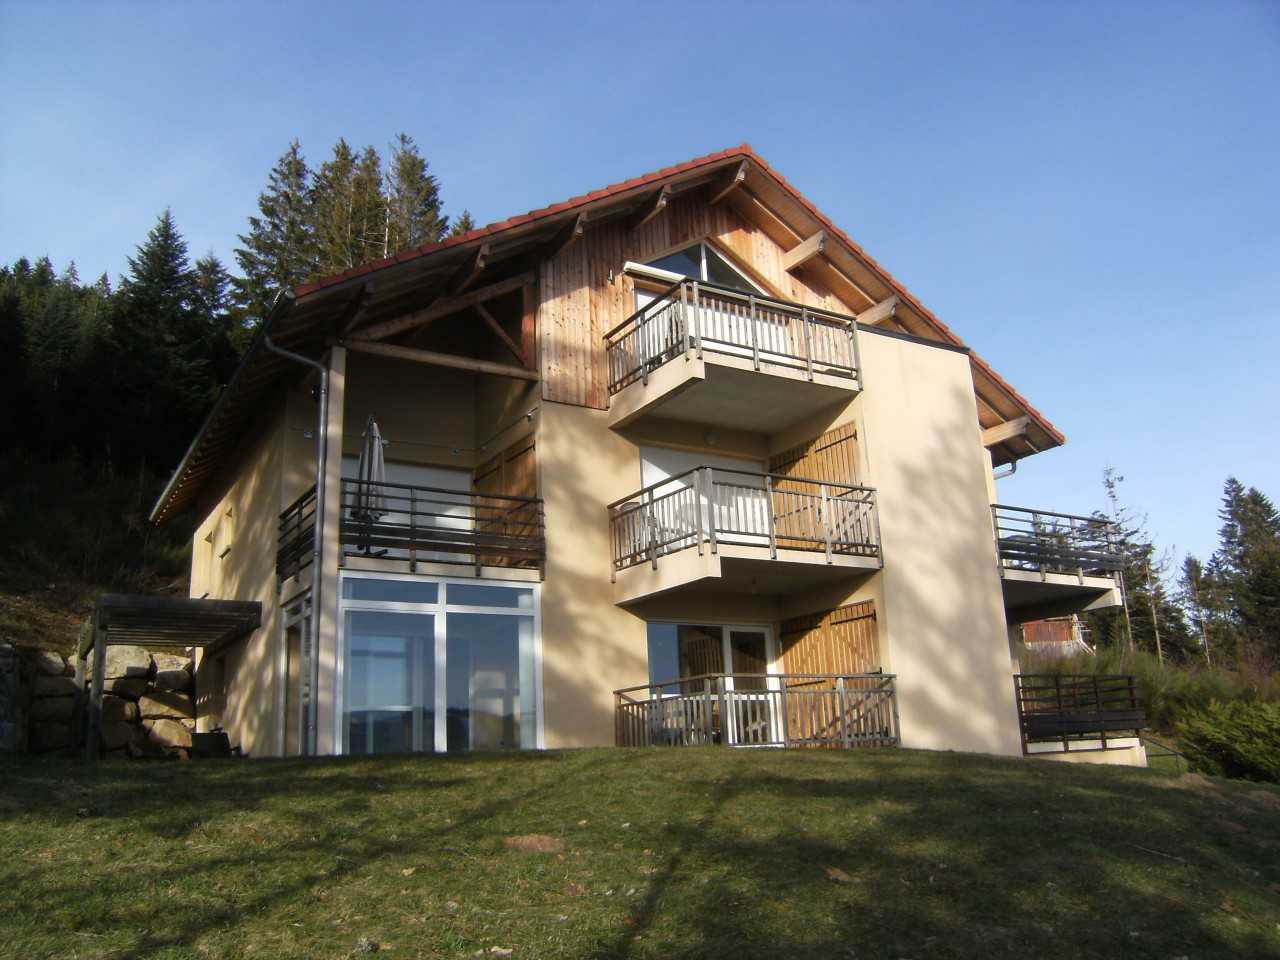 Agence immobili re g rardmer annonce appartements n 2123 for Agence immobiliere gerardmer